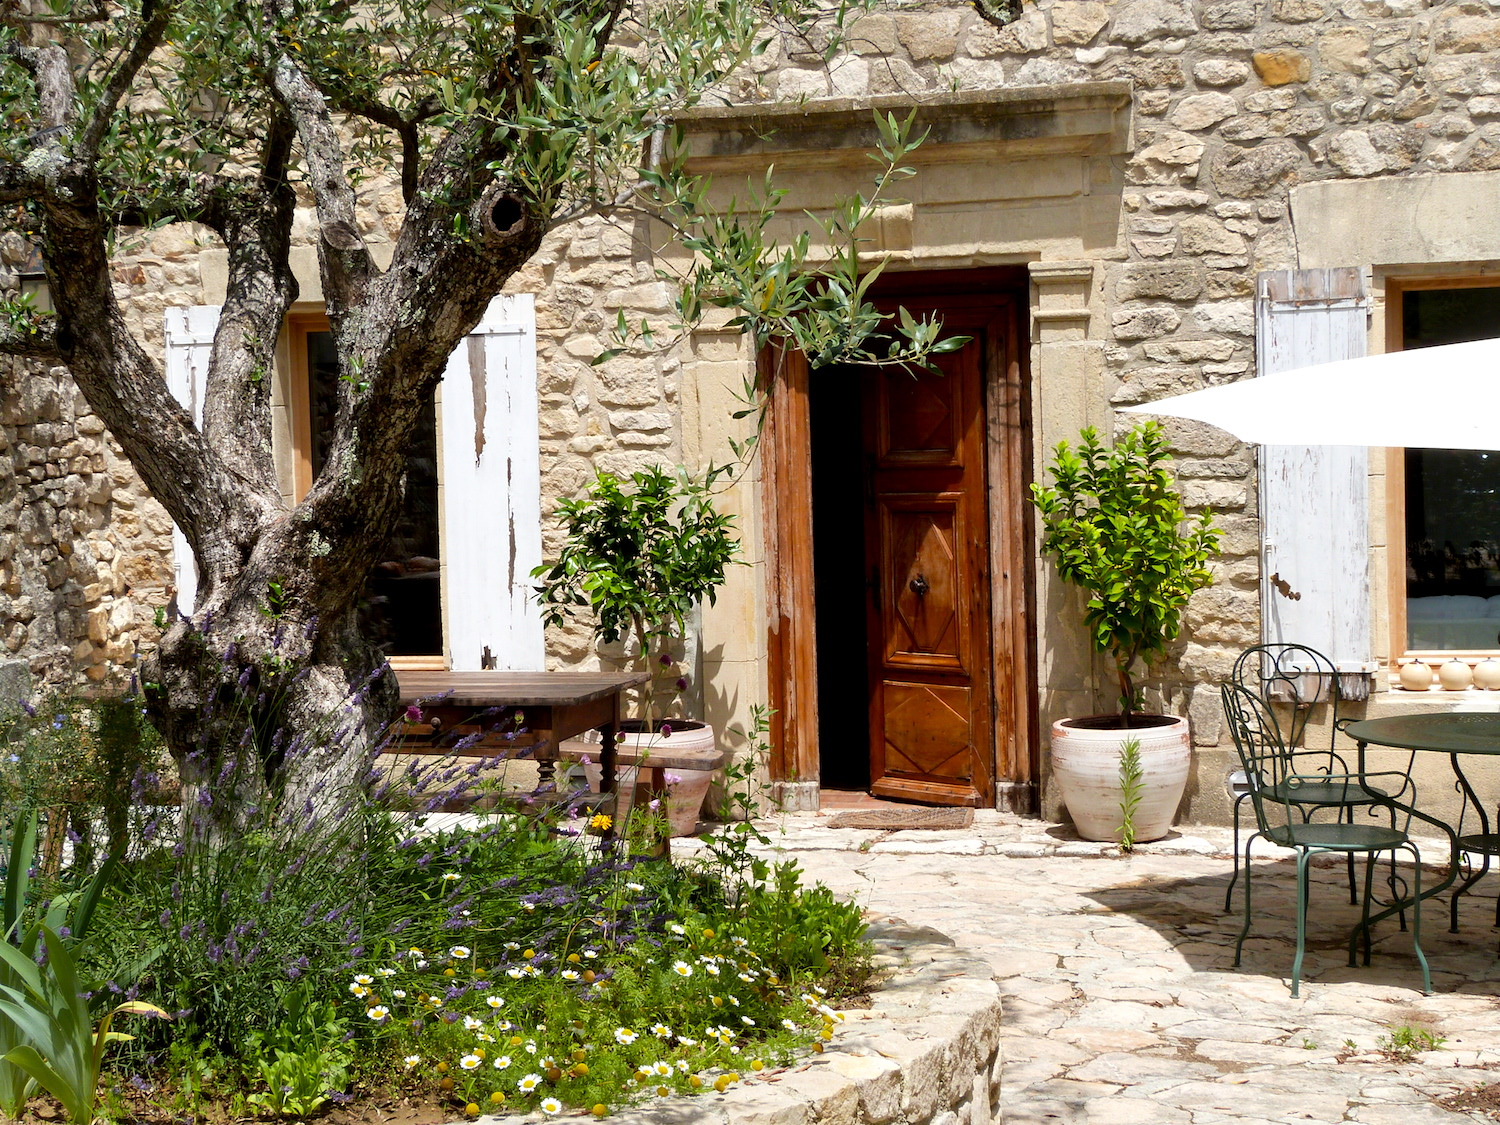 2202 : La Roque sur Cèze, charming house, plus artist's studio, in one of the prettiest villages in France